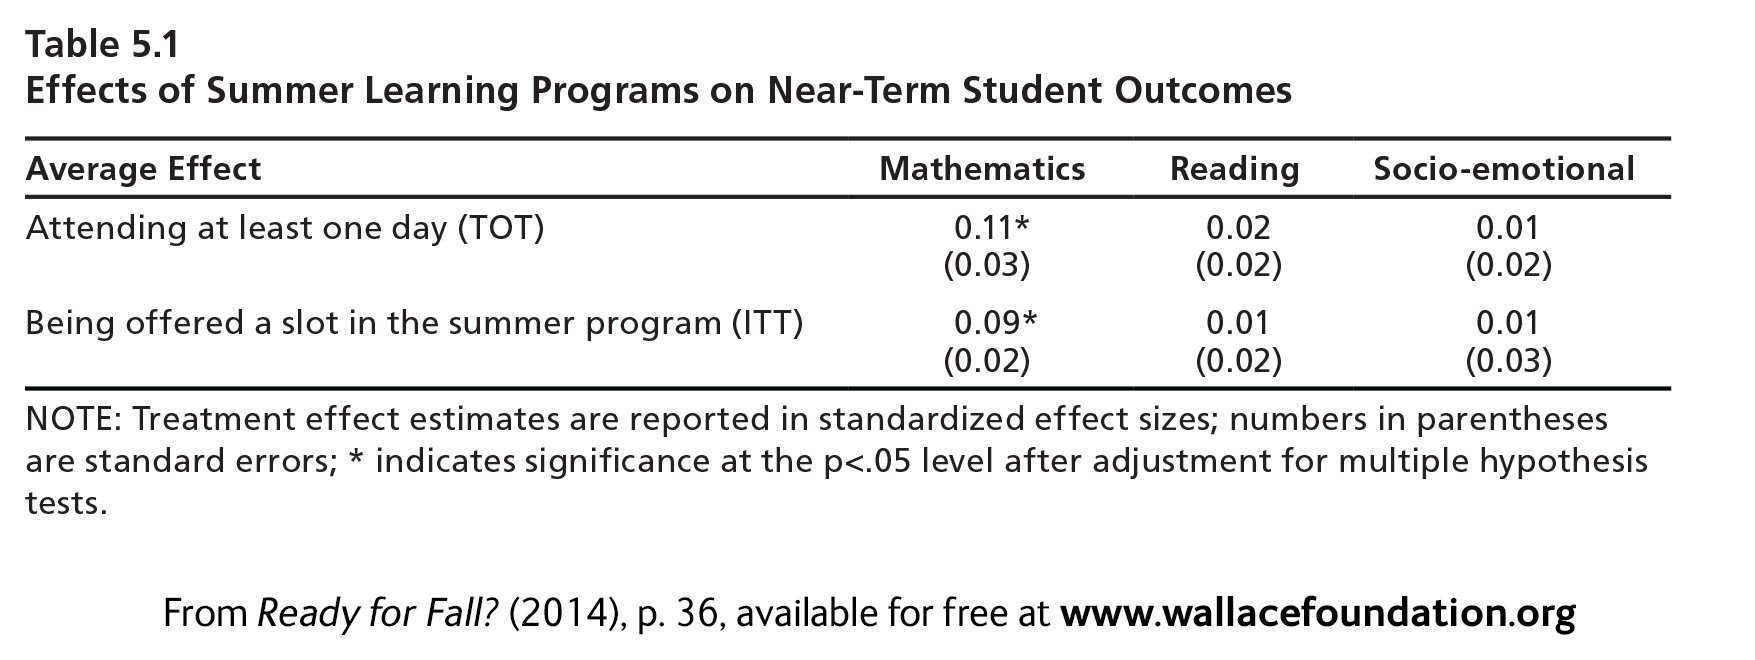 Worksheet Summer Learning Programs ready for fall near term effects of voluntary summer learning chart programs on student outcomes